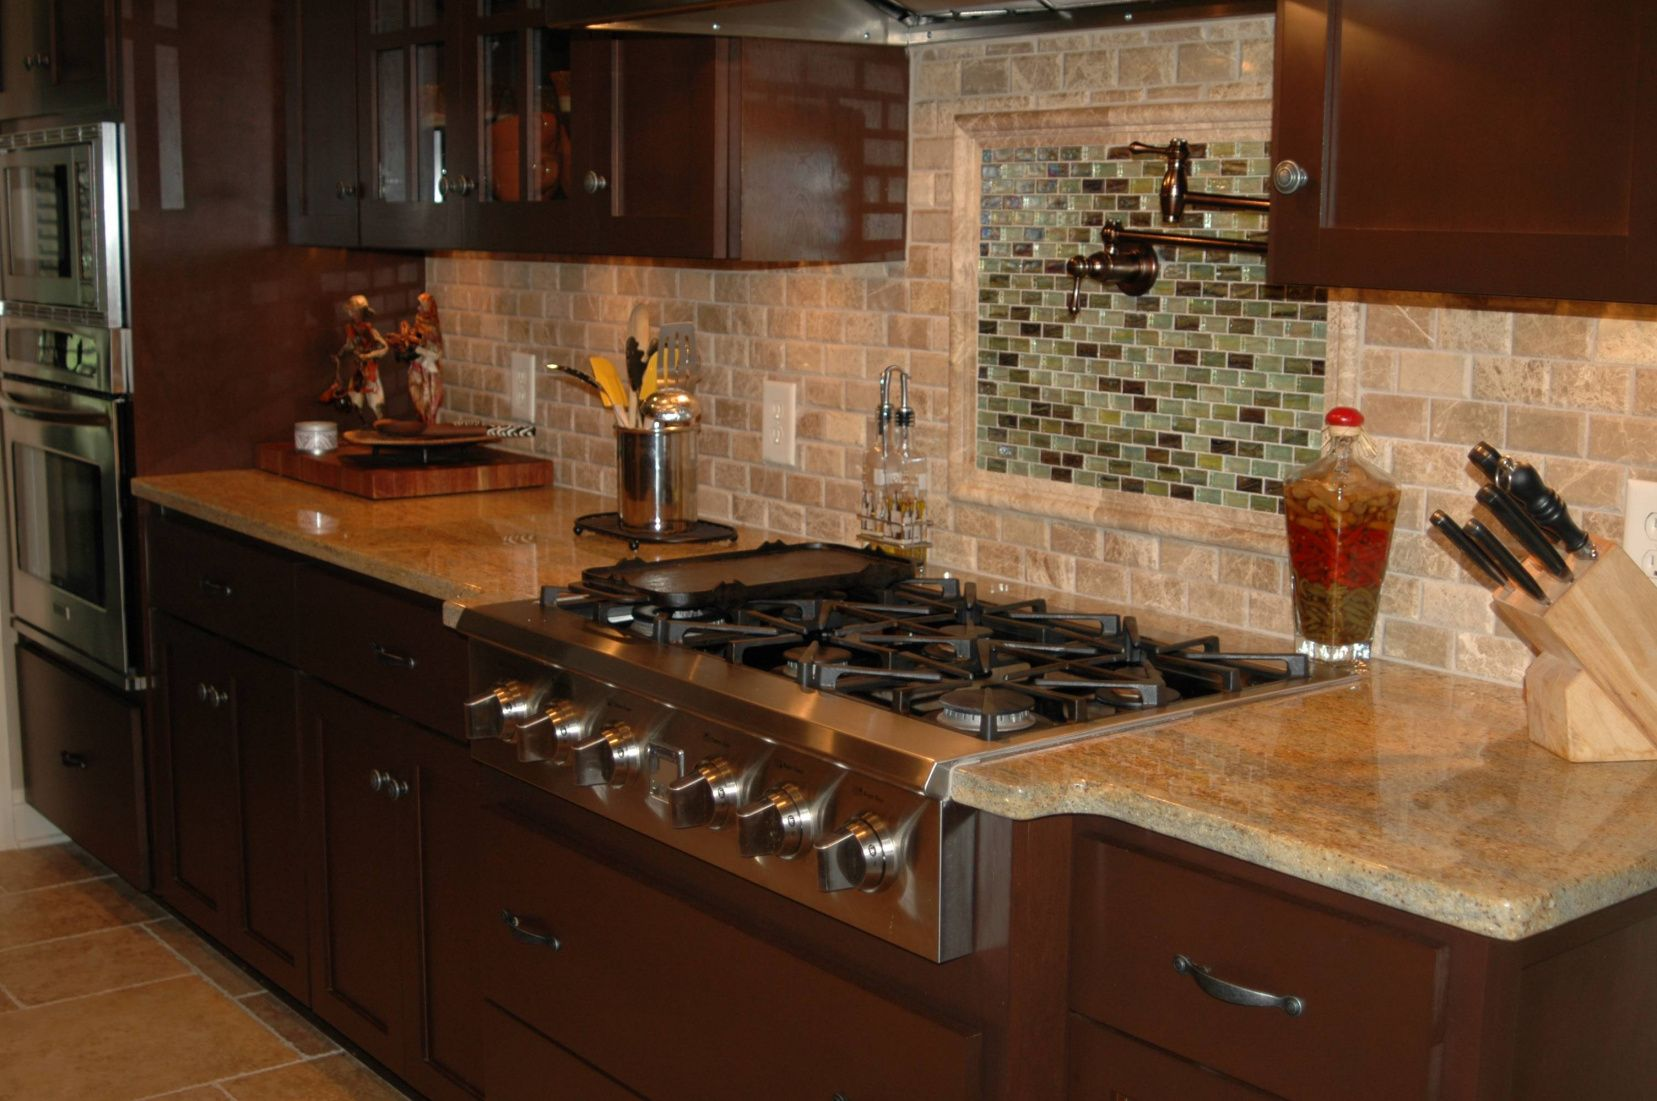 Bon 2019 Buying Granite Countertops   Apartment Kitchen Cabinet Ideas Check  More At Http://